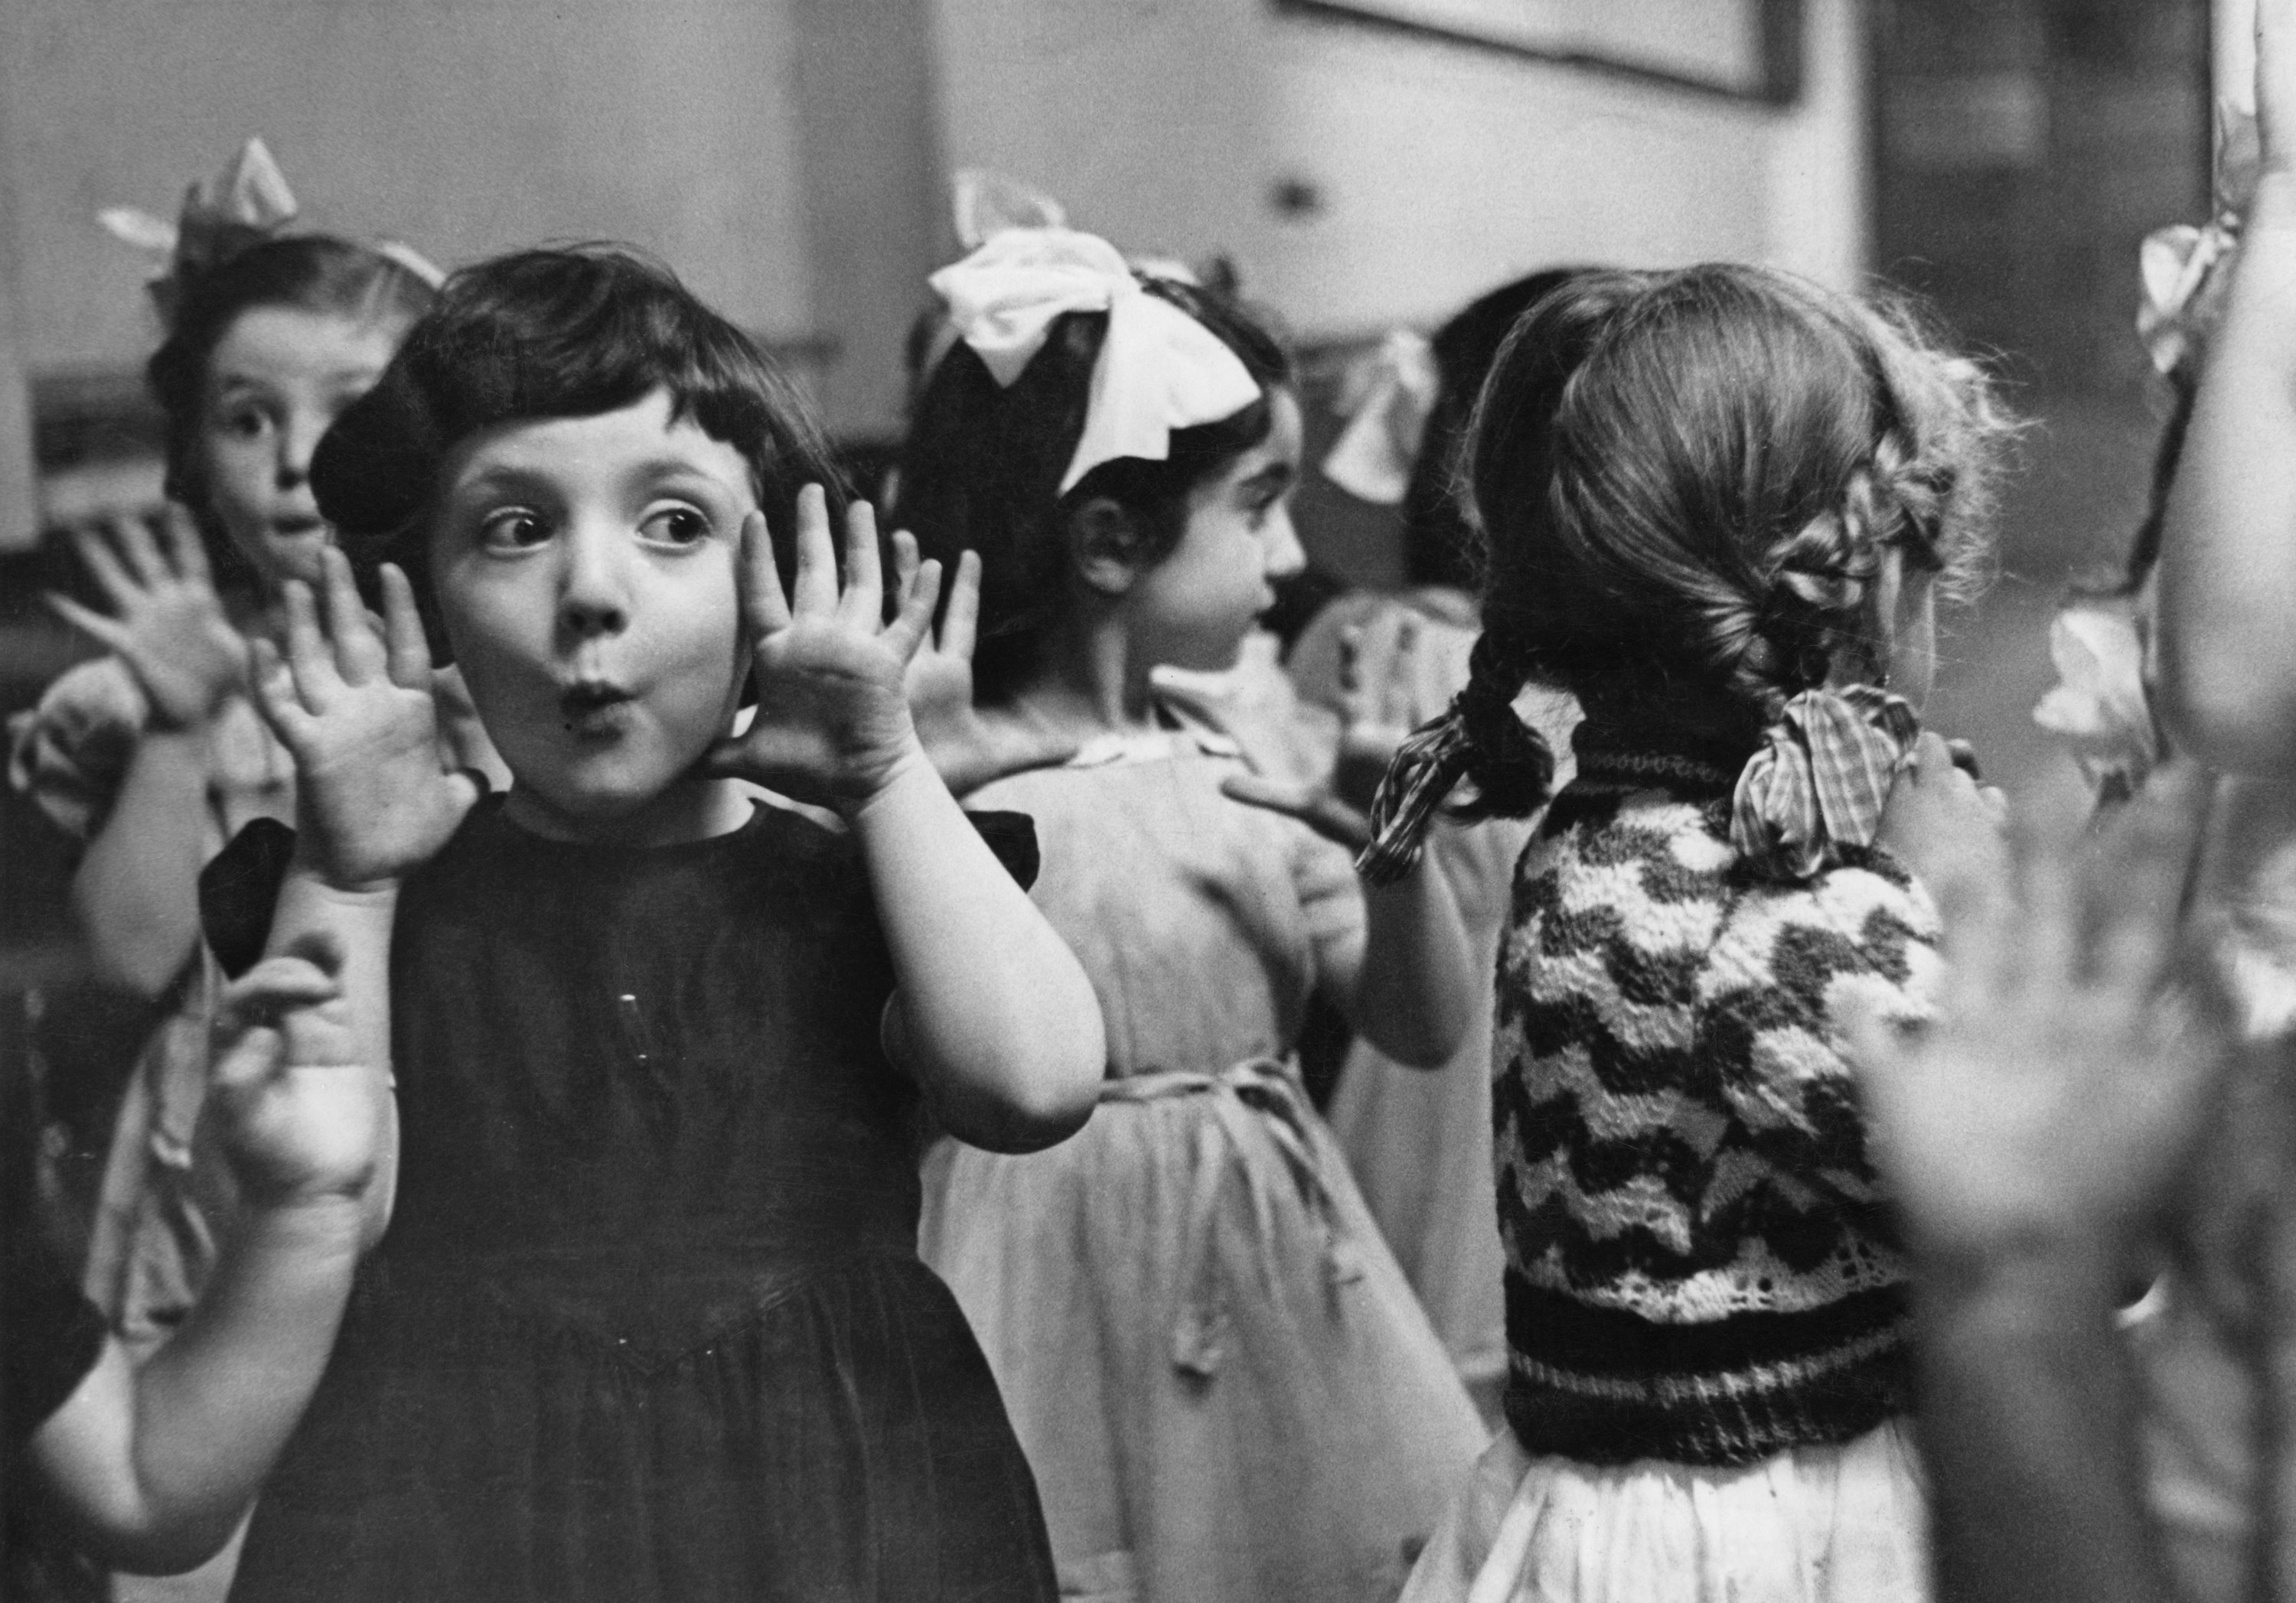 Young girls making faces in a vintage photo